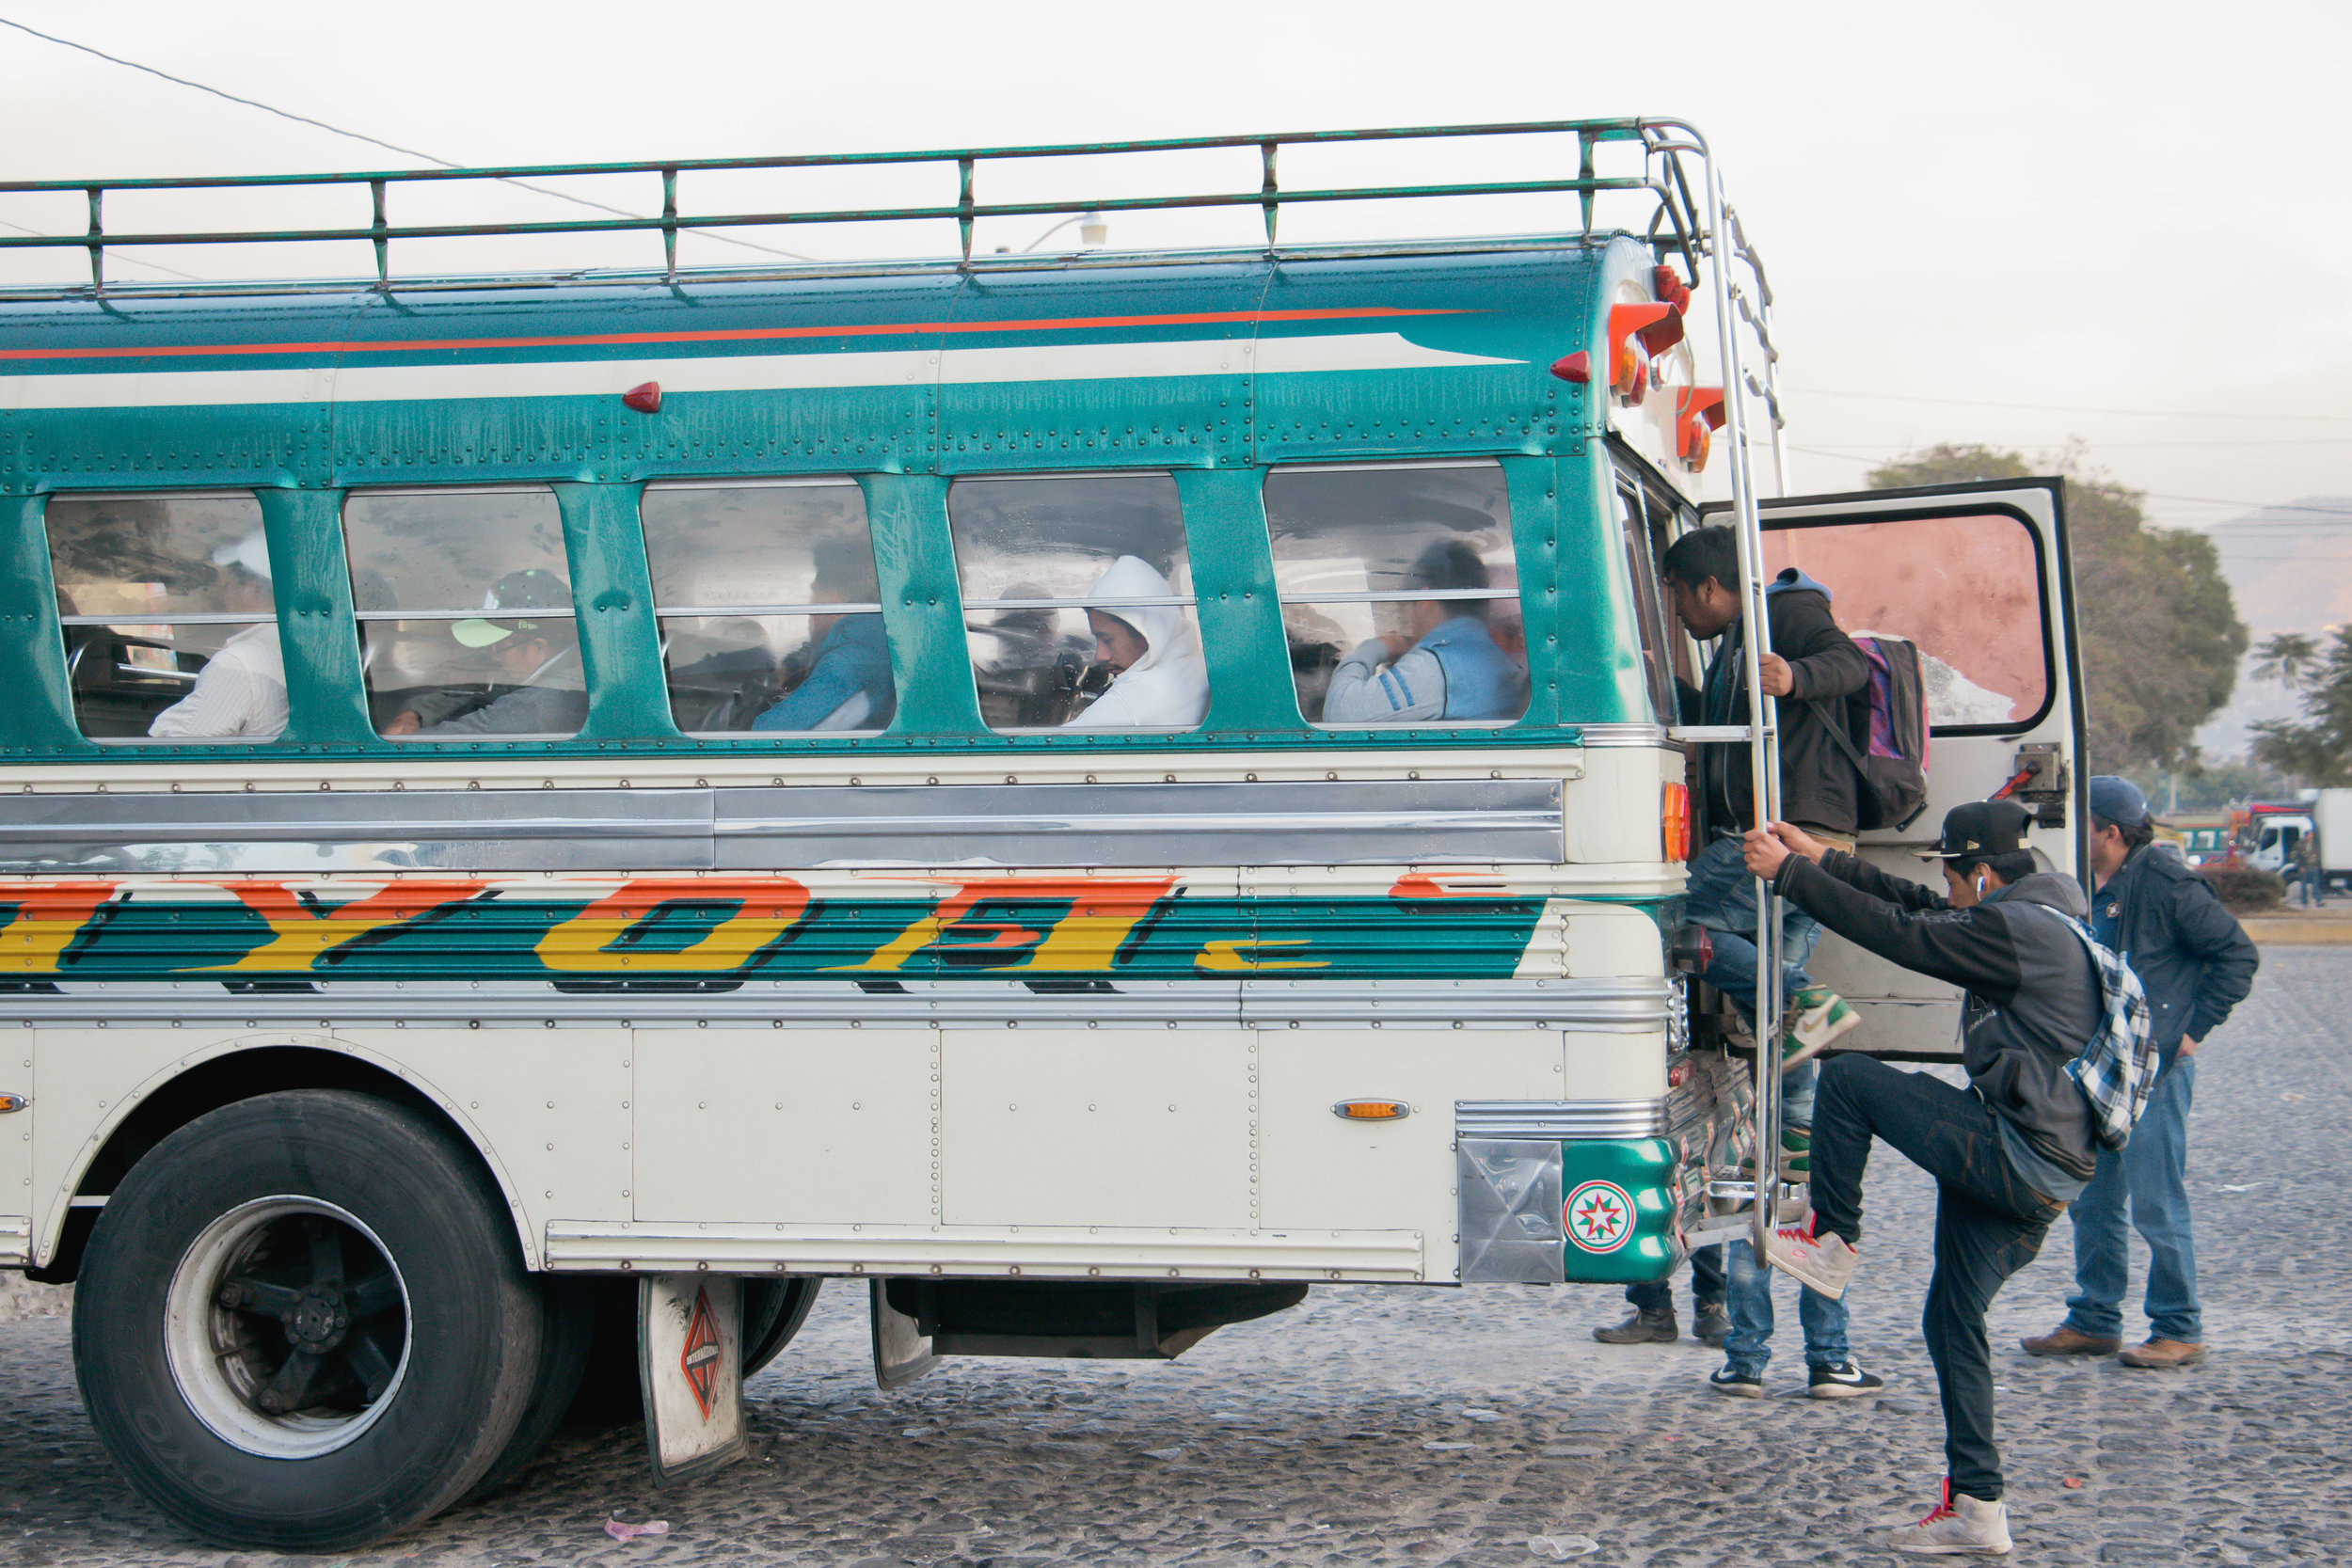 A YOUNG MAN CLIMBS ONTO A CHICKEN BUS EARLY IN THE MORNING IN THE ANTIGUA BUS TERMINAL ON JAN. 10. CHICKEN BUSES ARE A VERY COMMON FORM OF PUBLIC TRANSPORTATION IN GUATEMALA FOR ANY AGE.